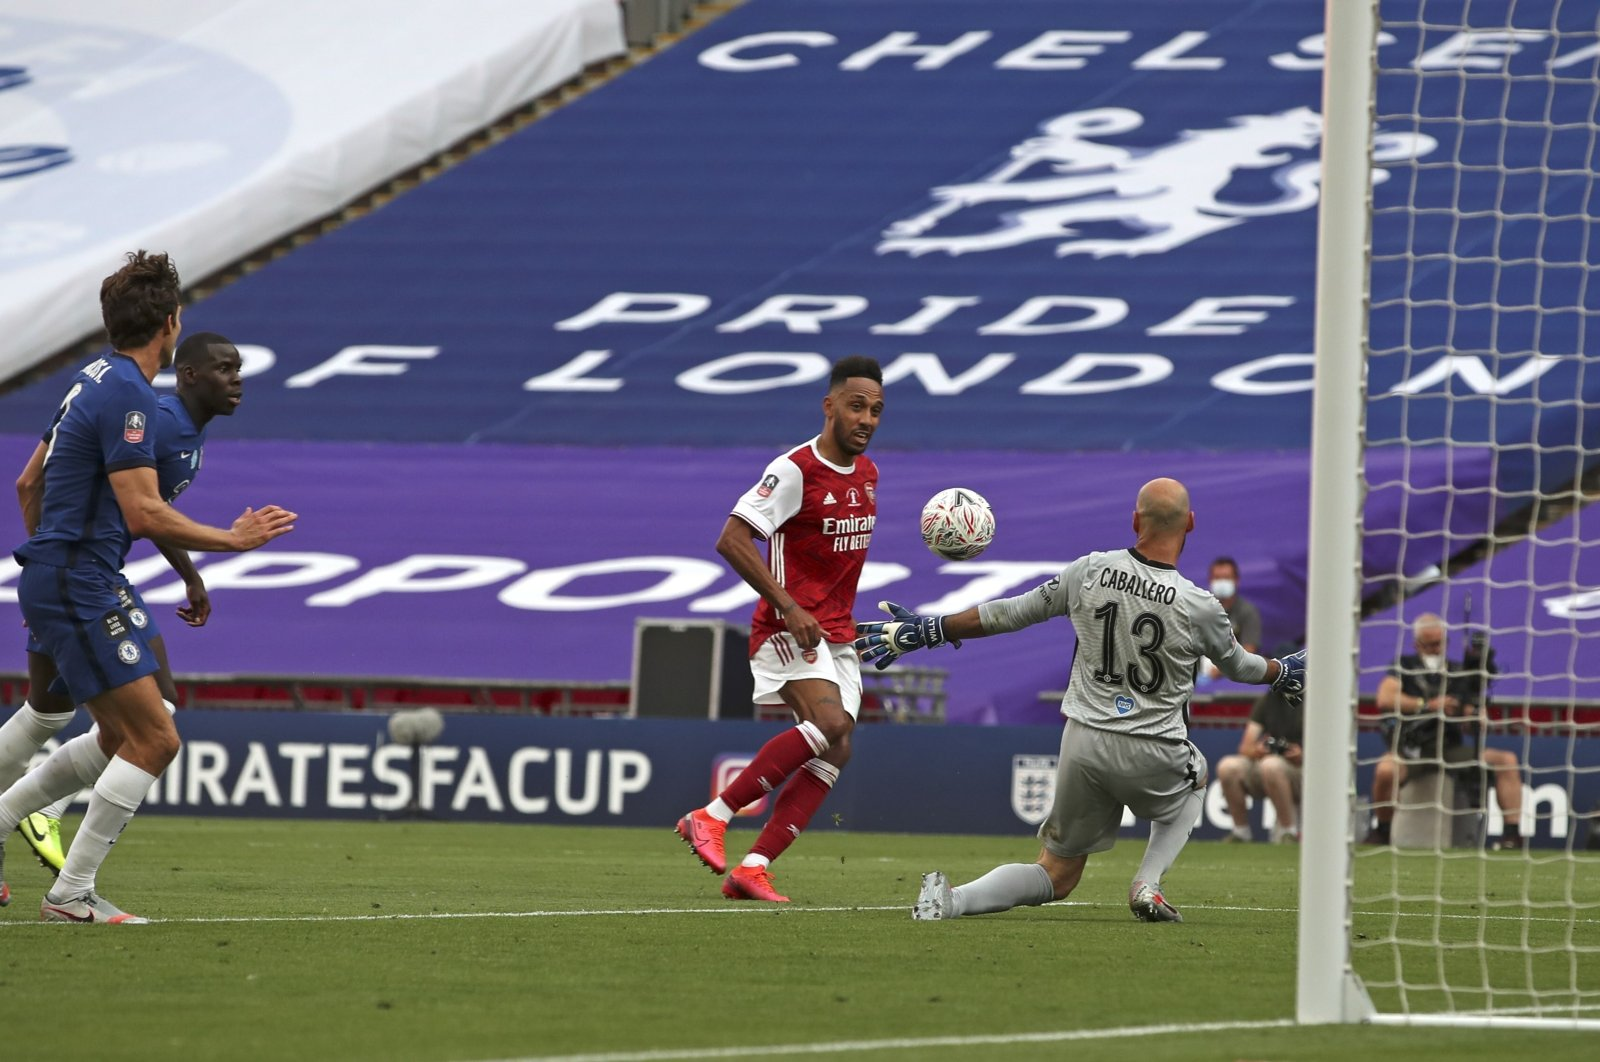 Arsenal's Pierre-Emerick Aubameyang scores his side's second goal during the FA Cup final soccer match between Arsenal and Chelsea at Wembley stadium in London, England, Saturday, Aug. 1, 2020. (AP Photo)